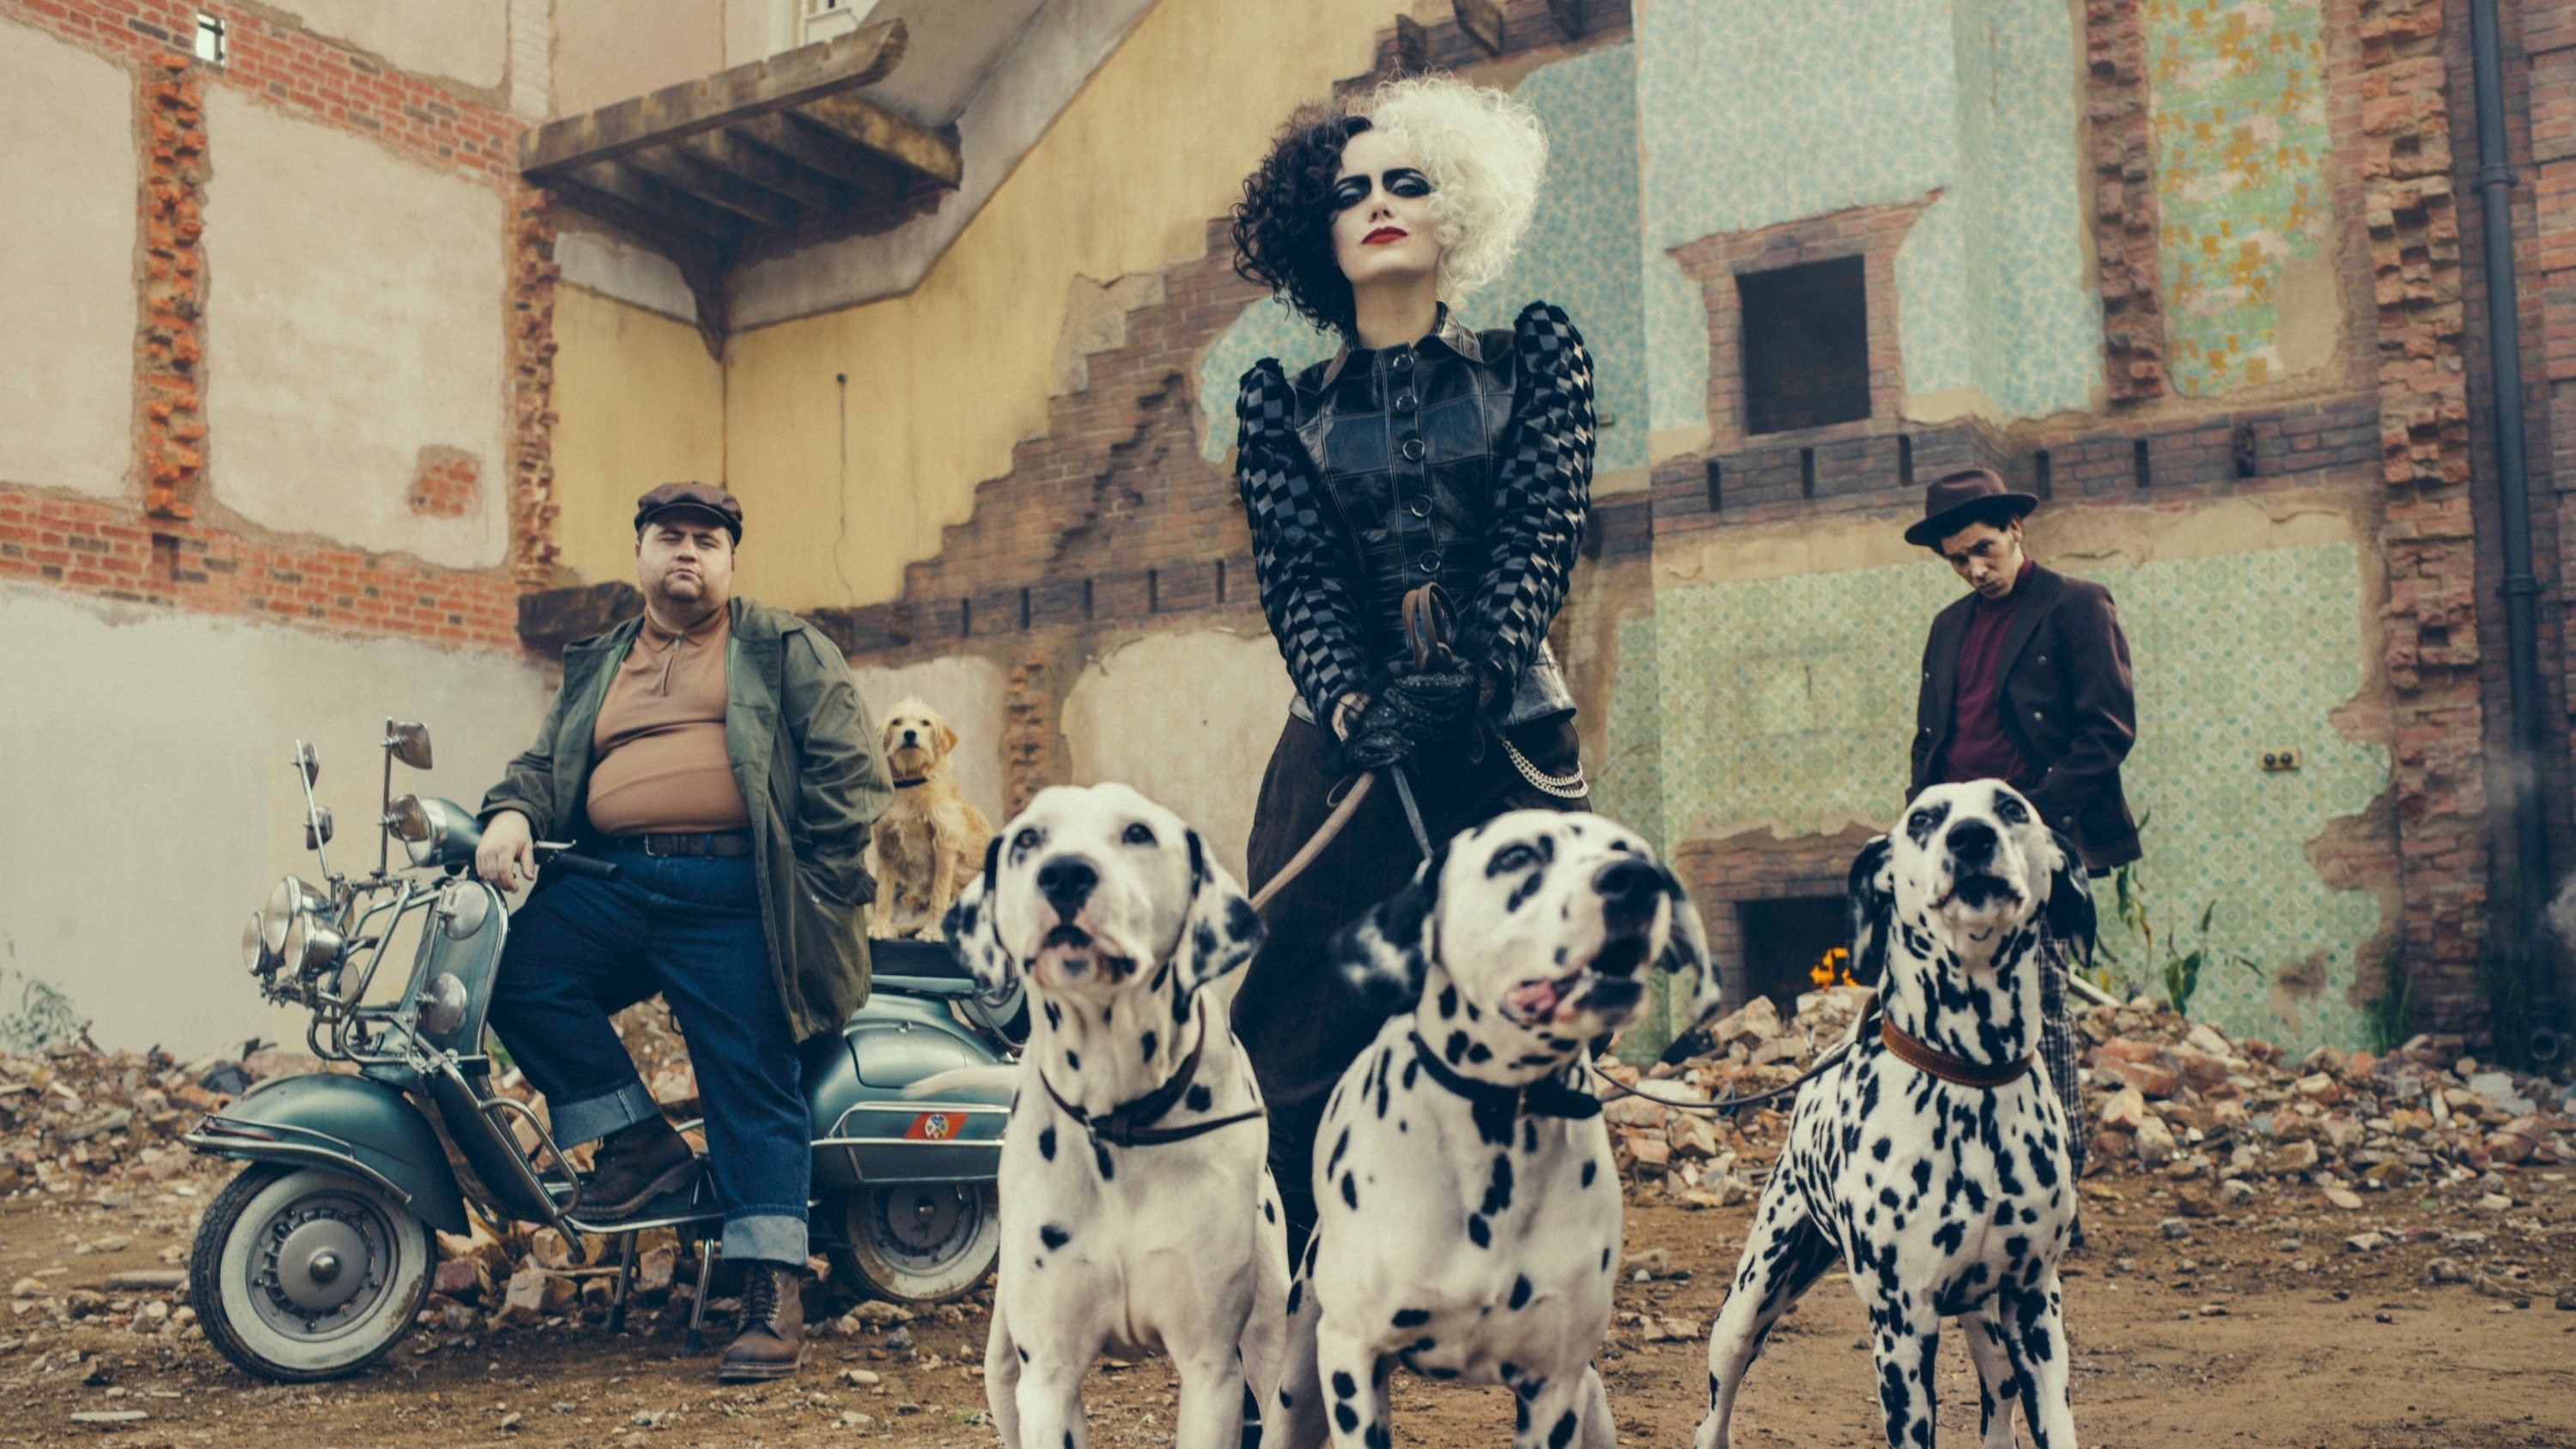 Emma as Cruella de Vil holding the leashes of three Dalmatians in an abandoned yard and two henchmen standing behind her